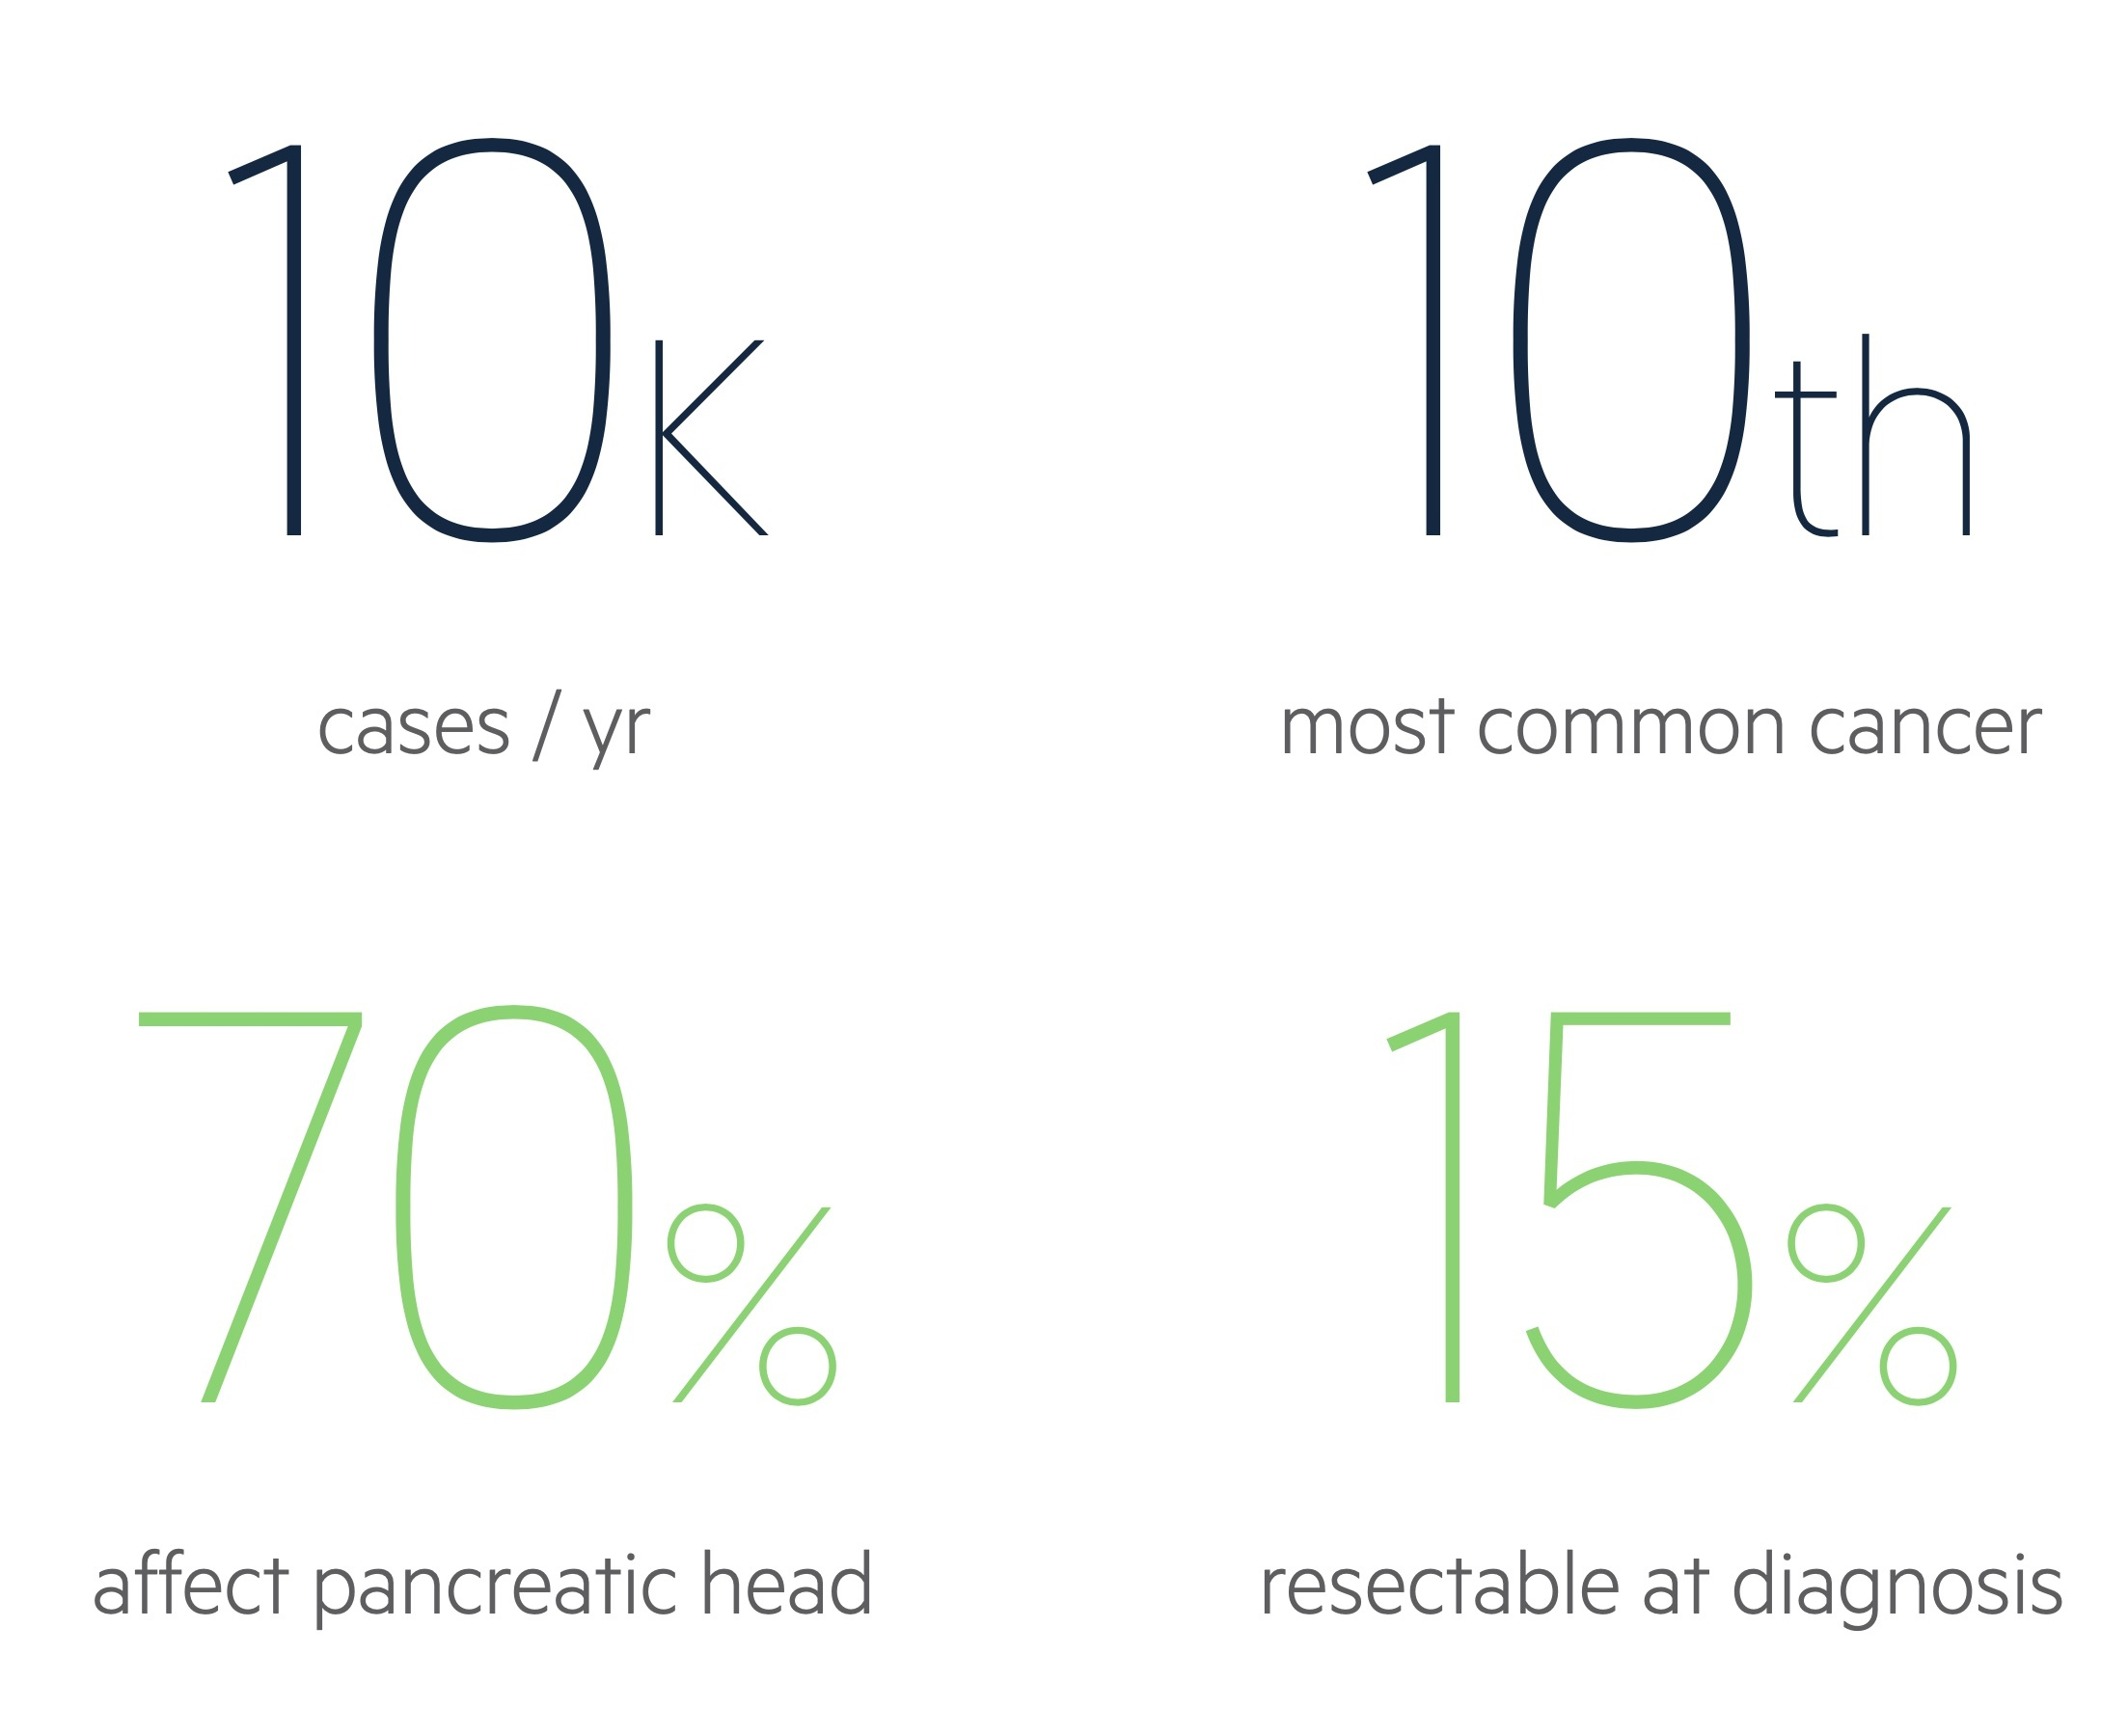 Pancreatic cancer facts and figures